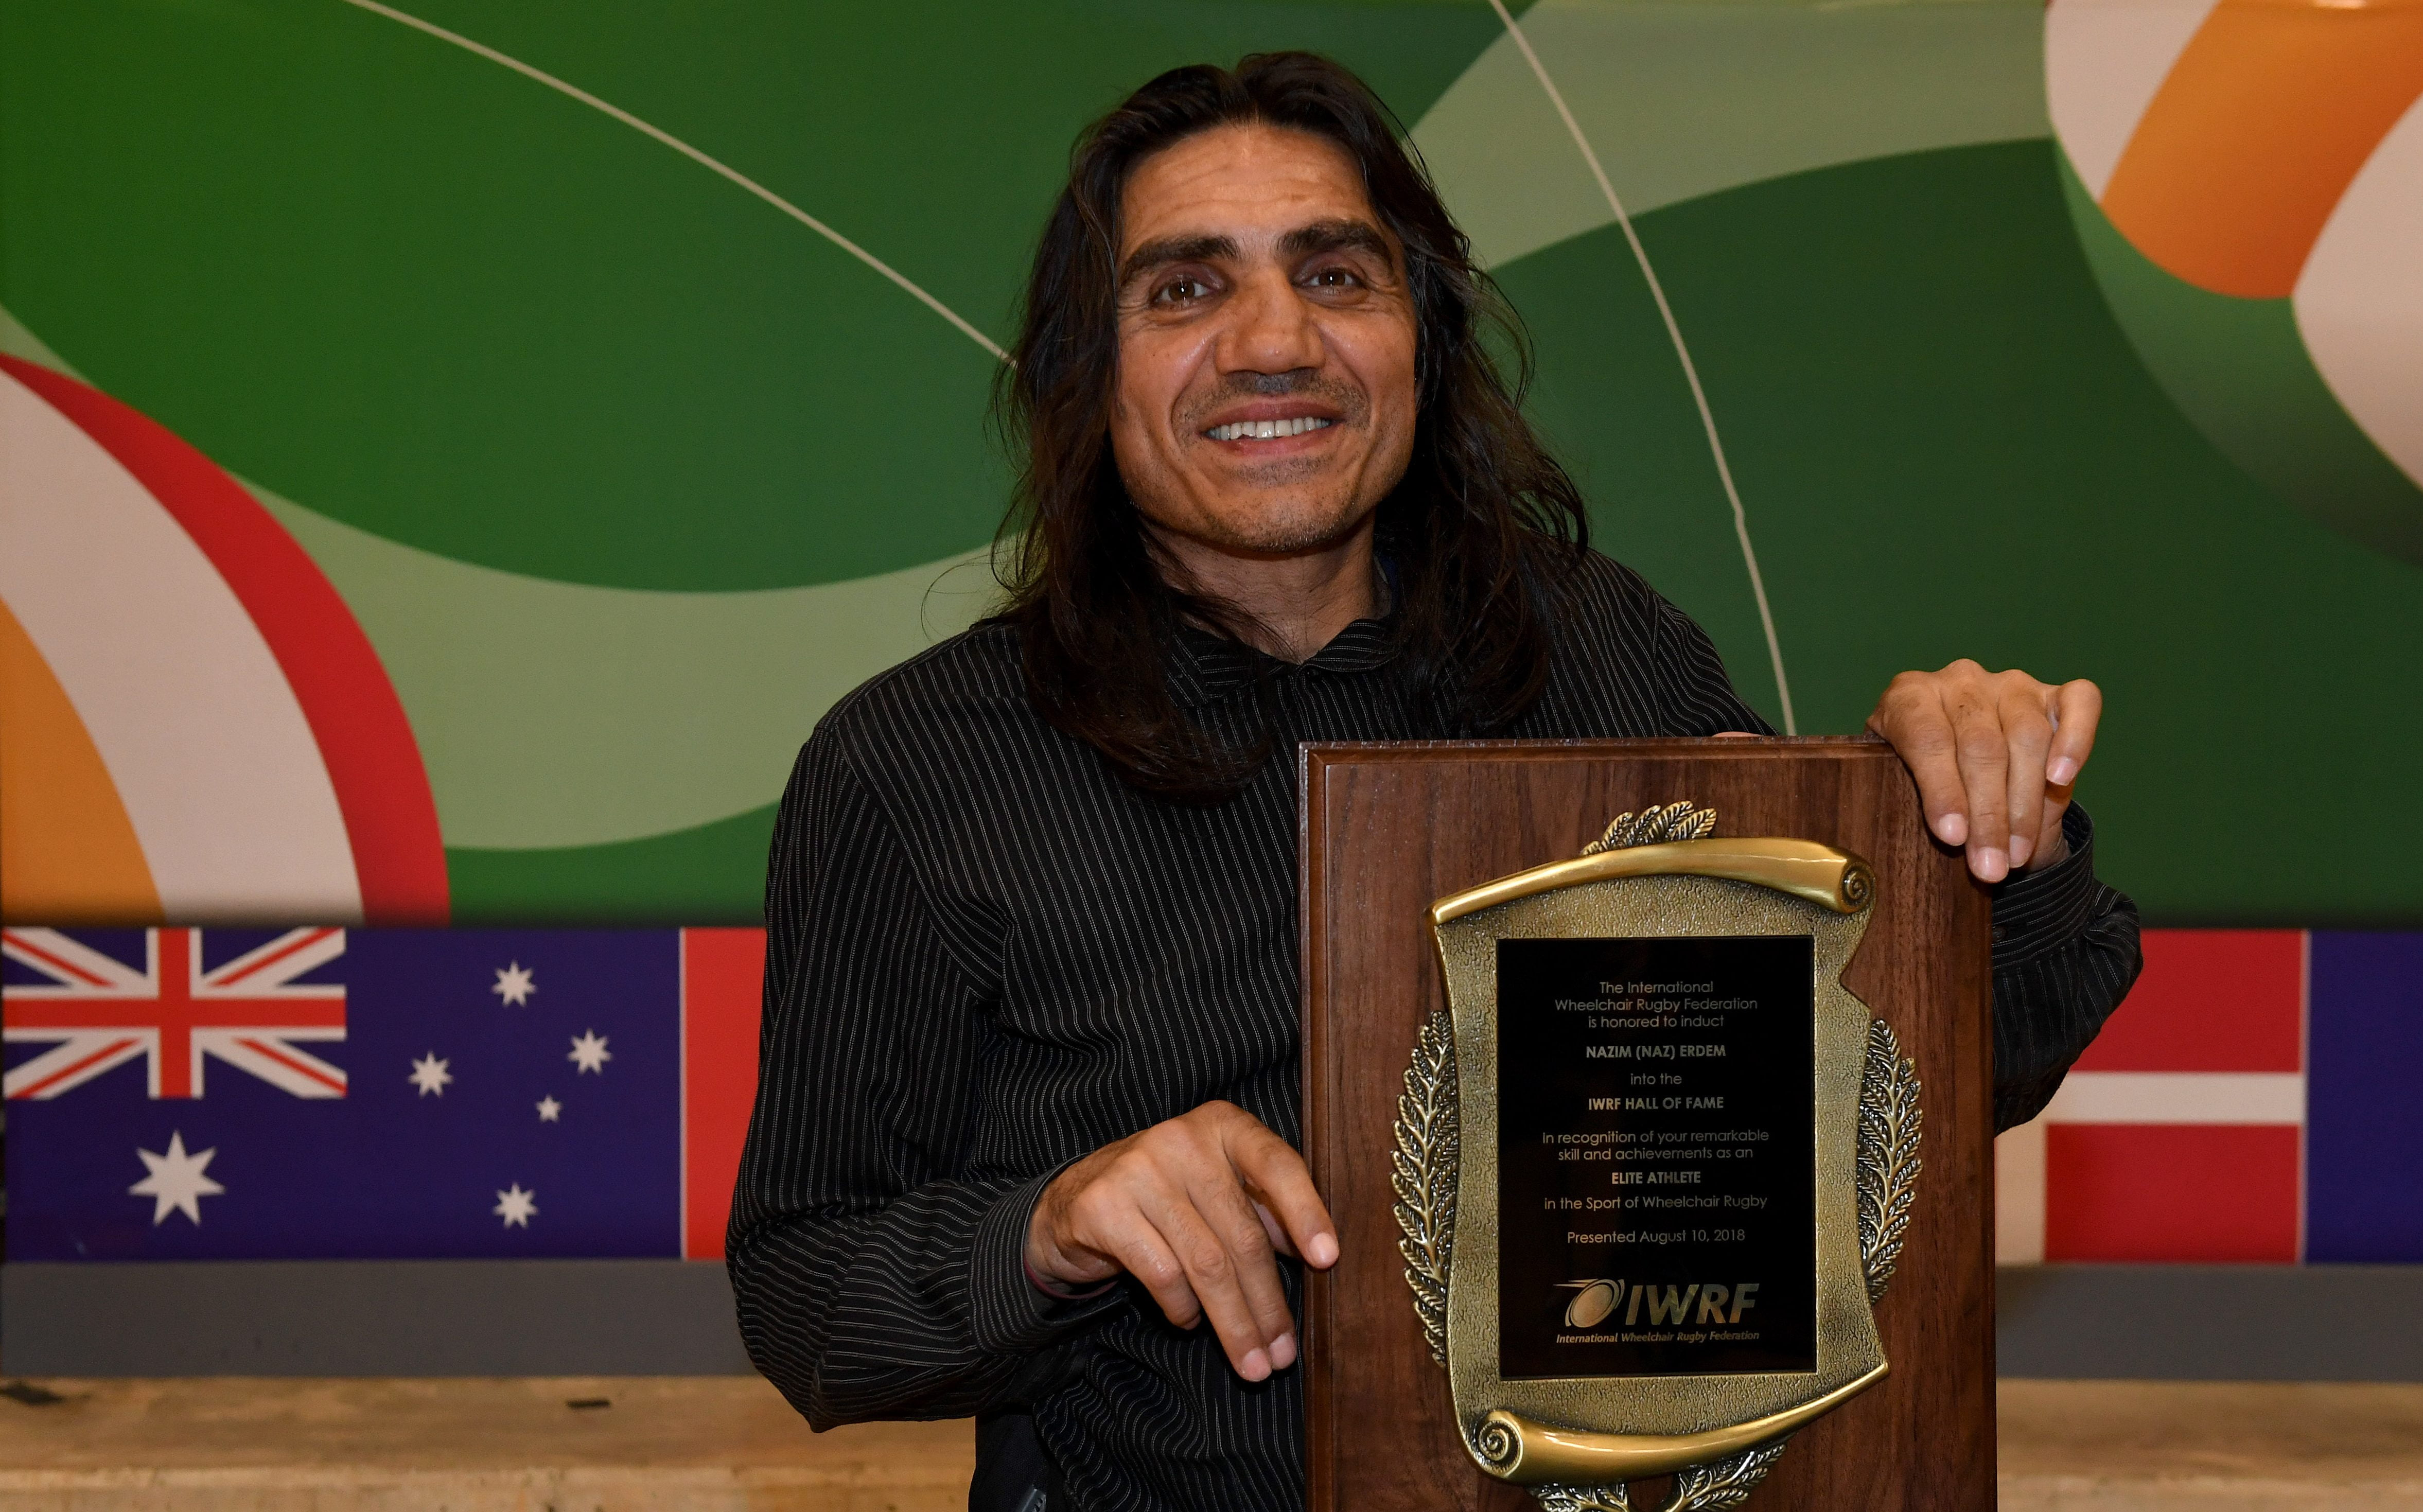 Wheelchair rugby icon honoured with IWRF Hall of Fame induction